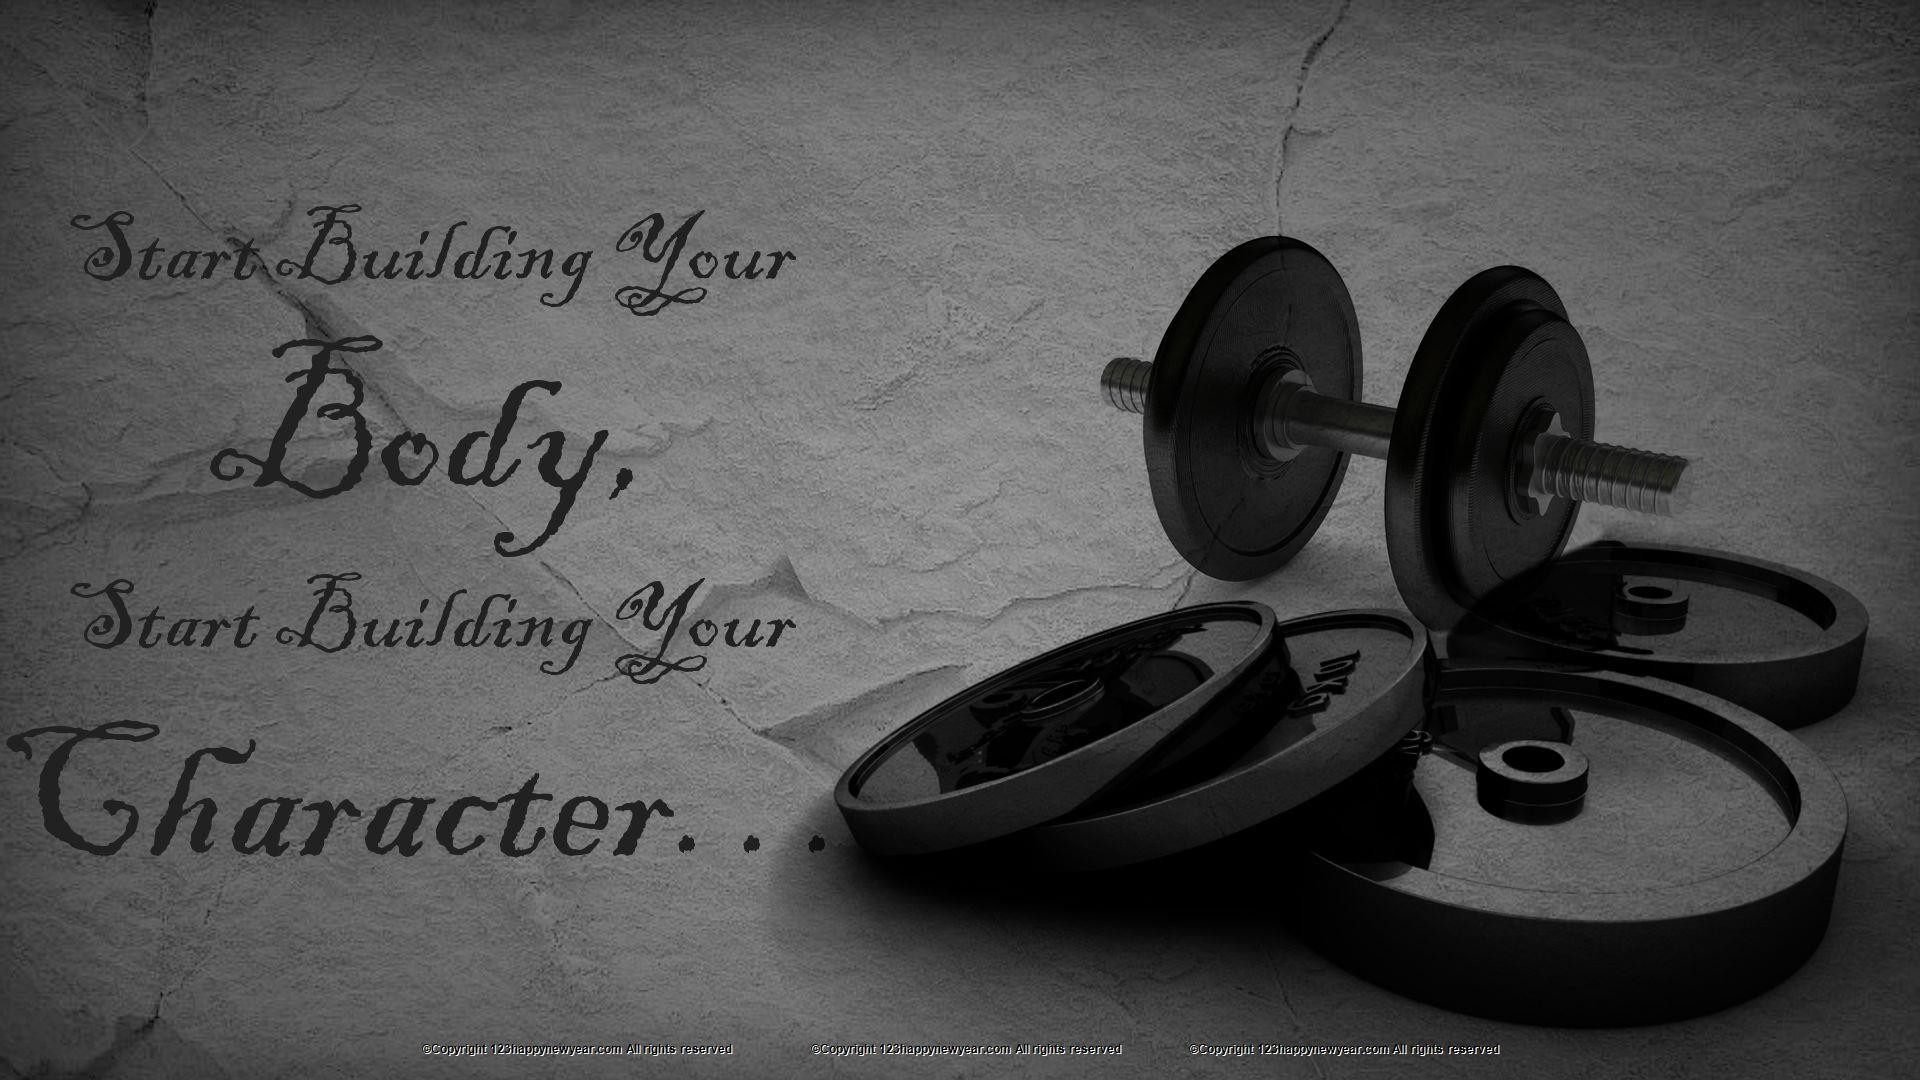 Gym Workout Hd Wallpaper Data Src Gym Workout Images Hd 1920x1080 Download Hd Wallpaper Wallpapertip